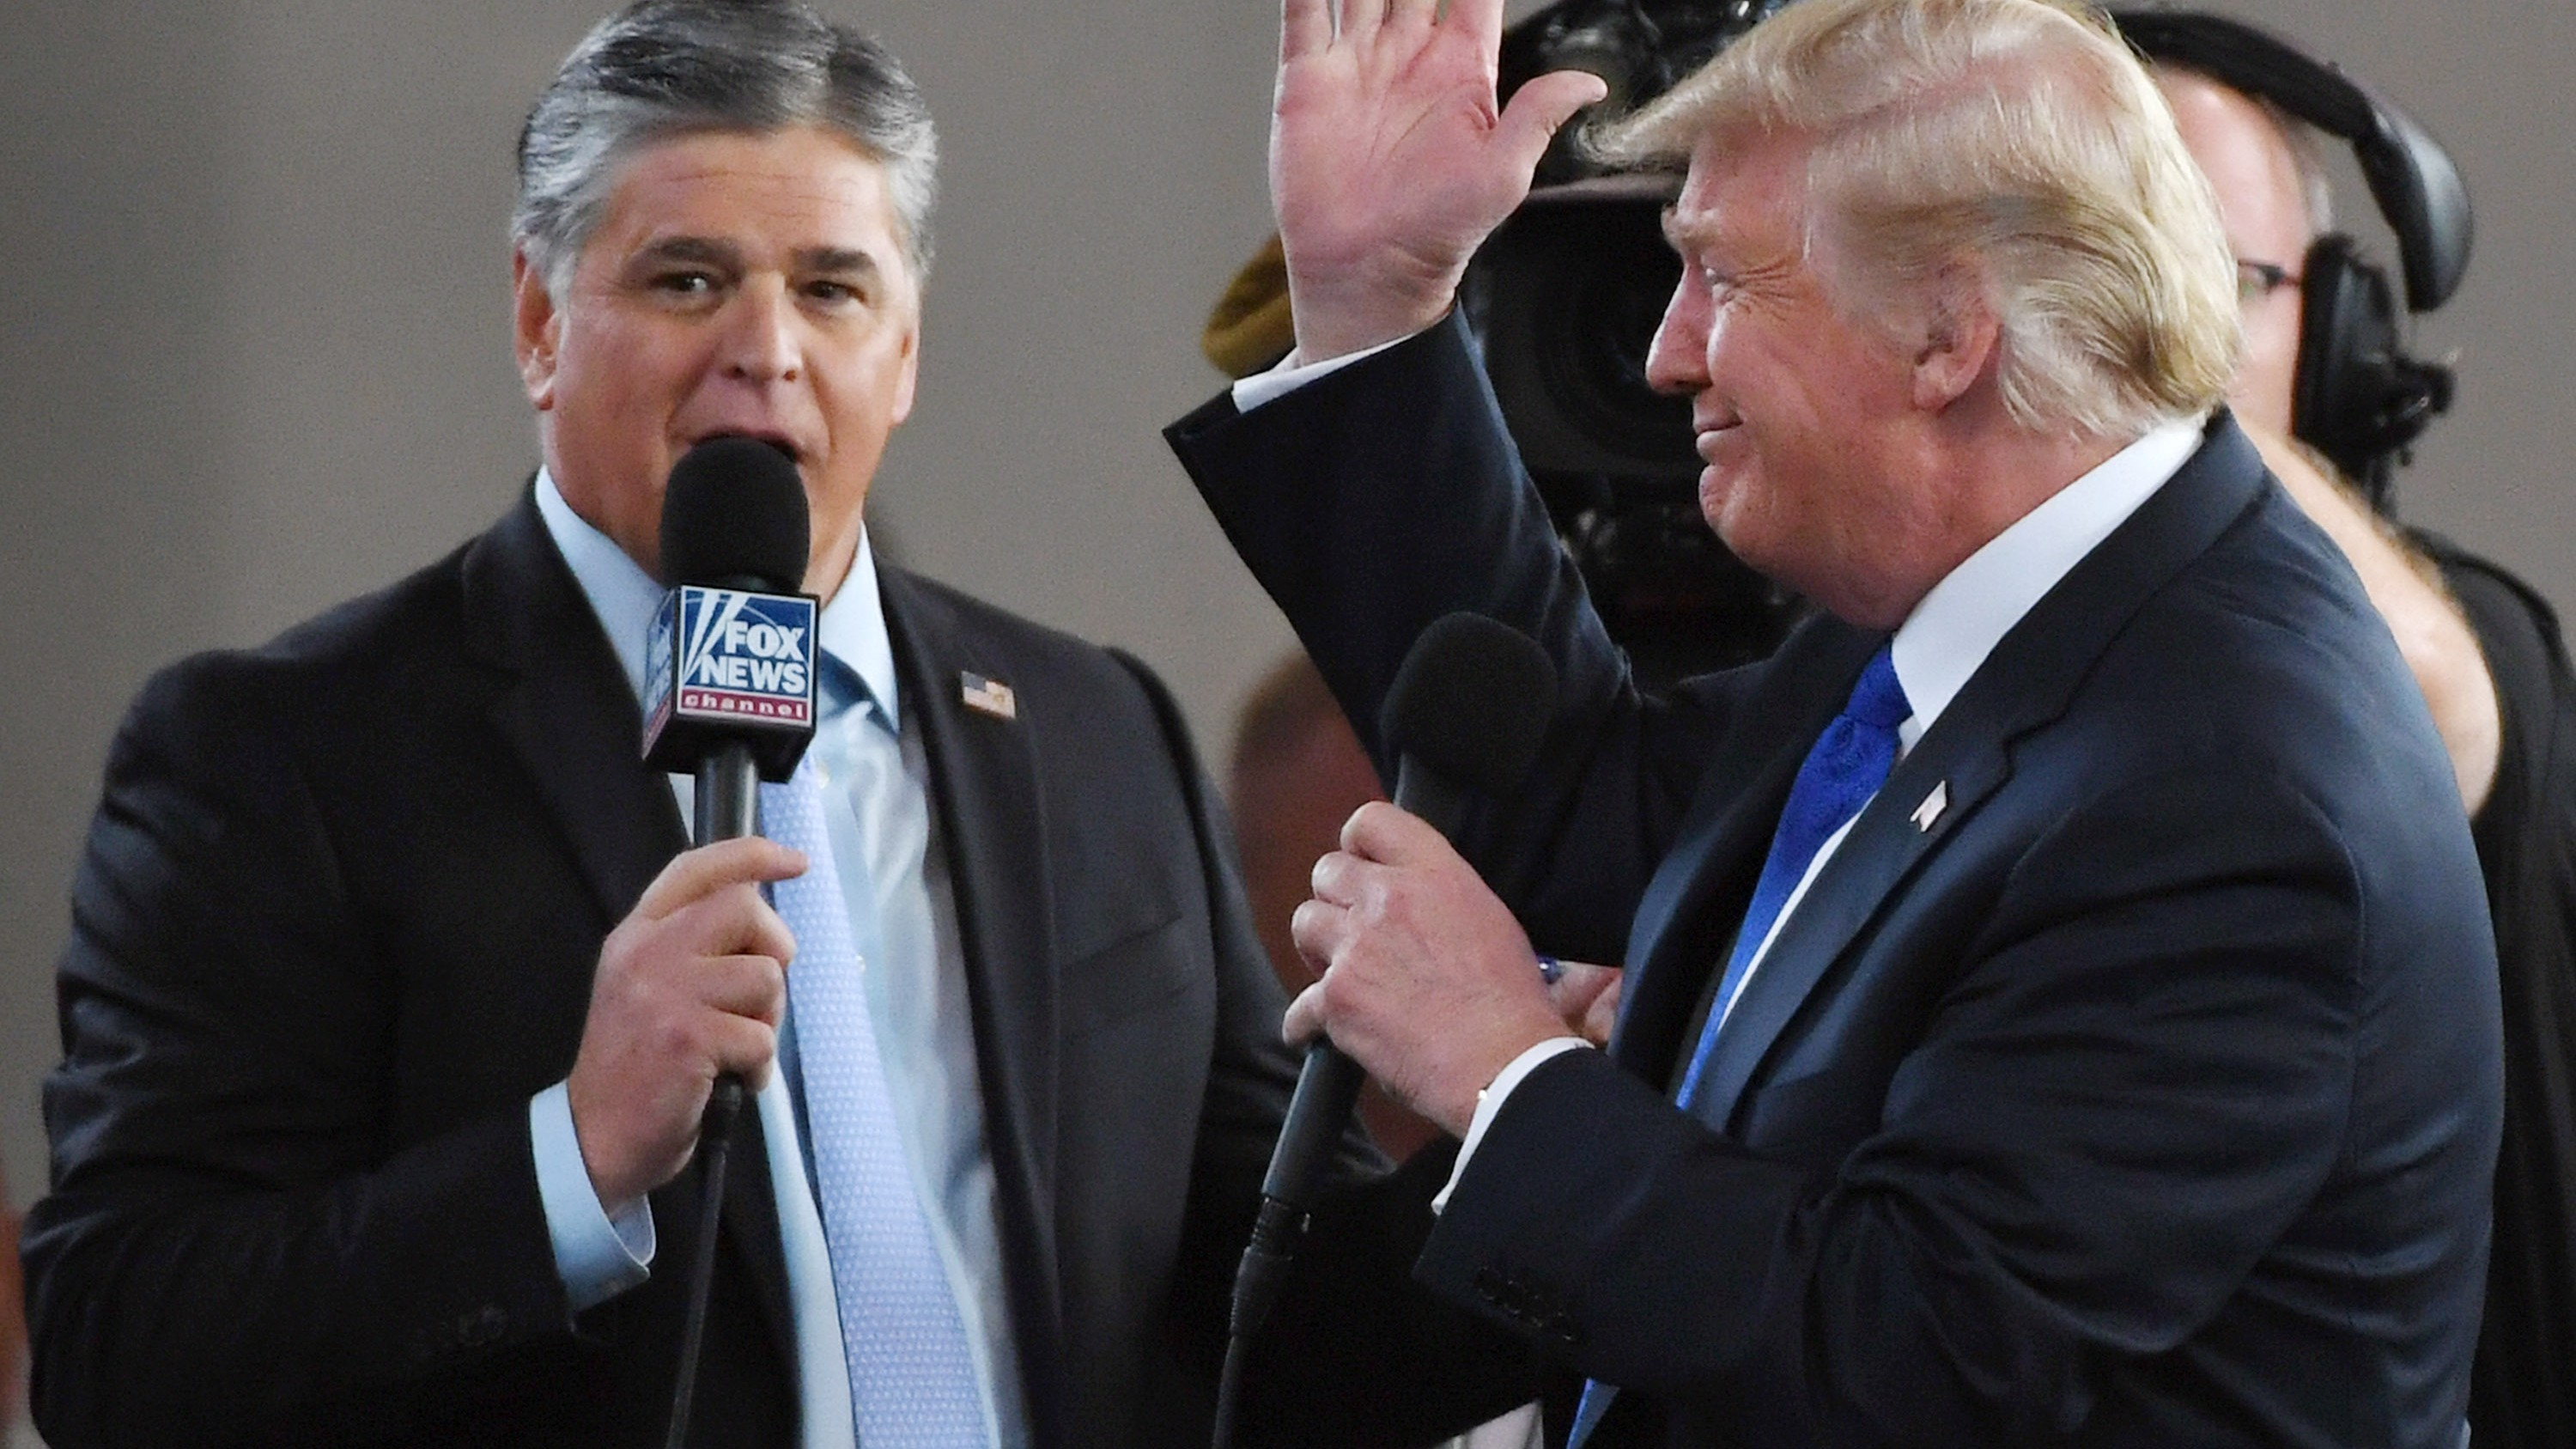 Trump may have just called out Fox News as fake news